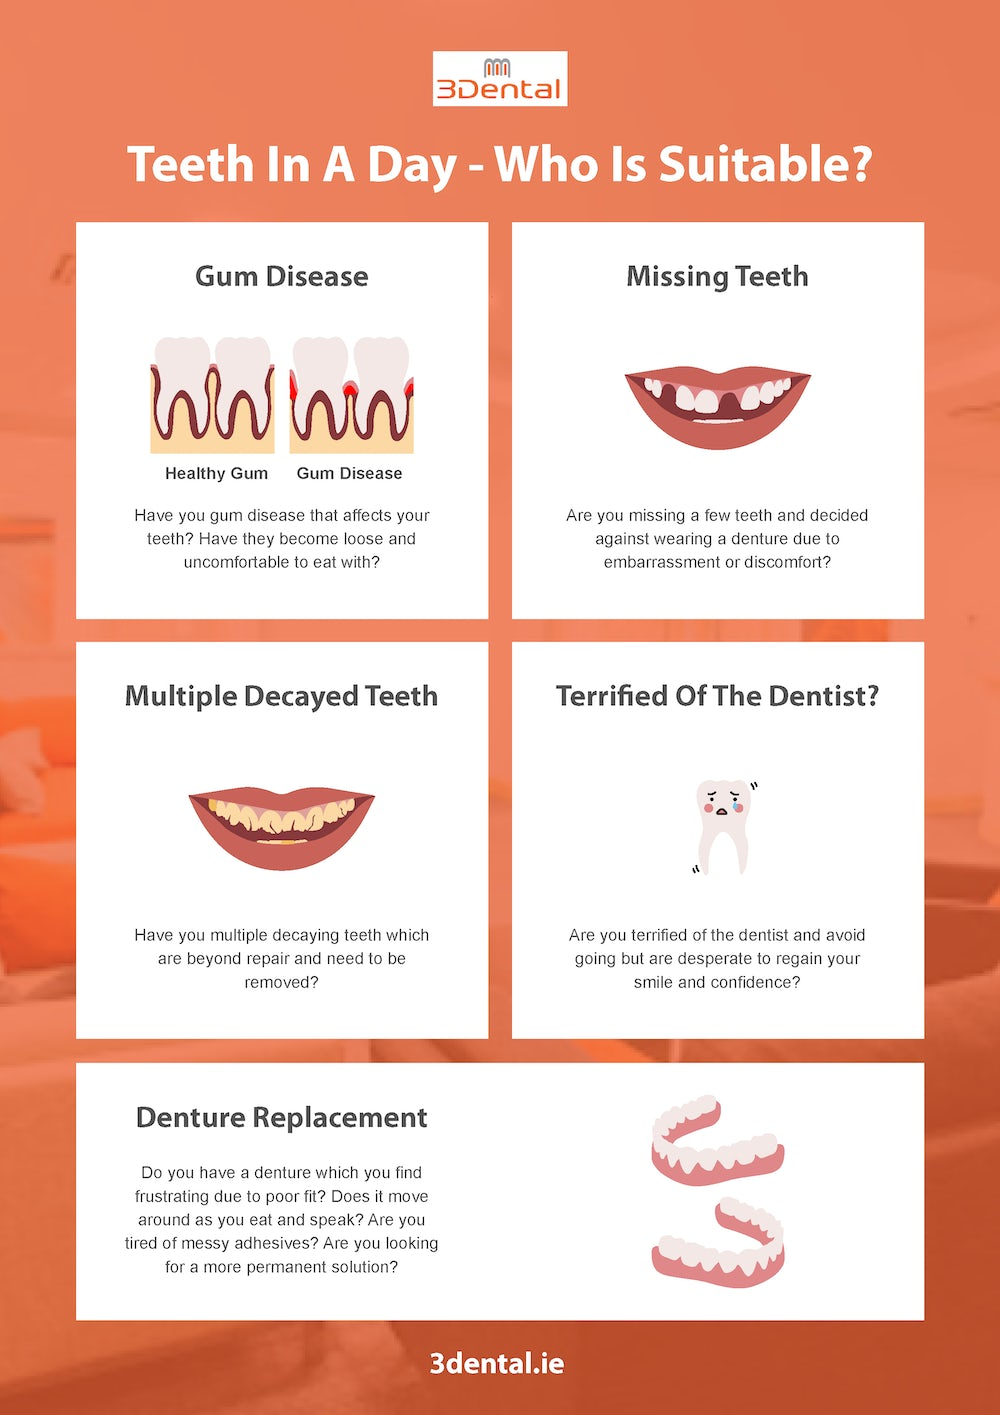 teeth-in-a-day-infographic-dentist